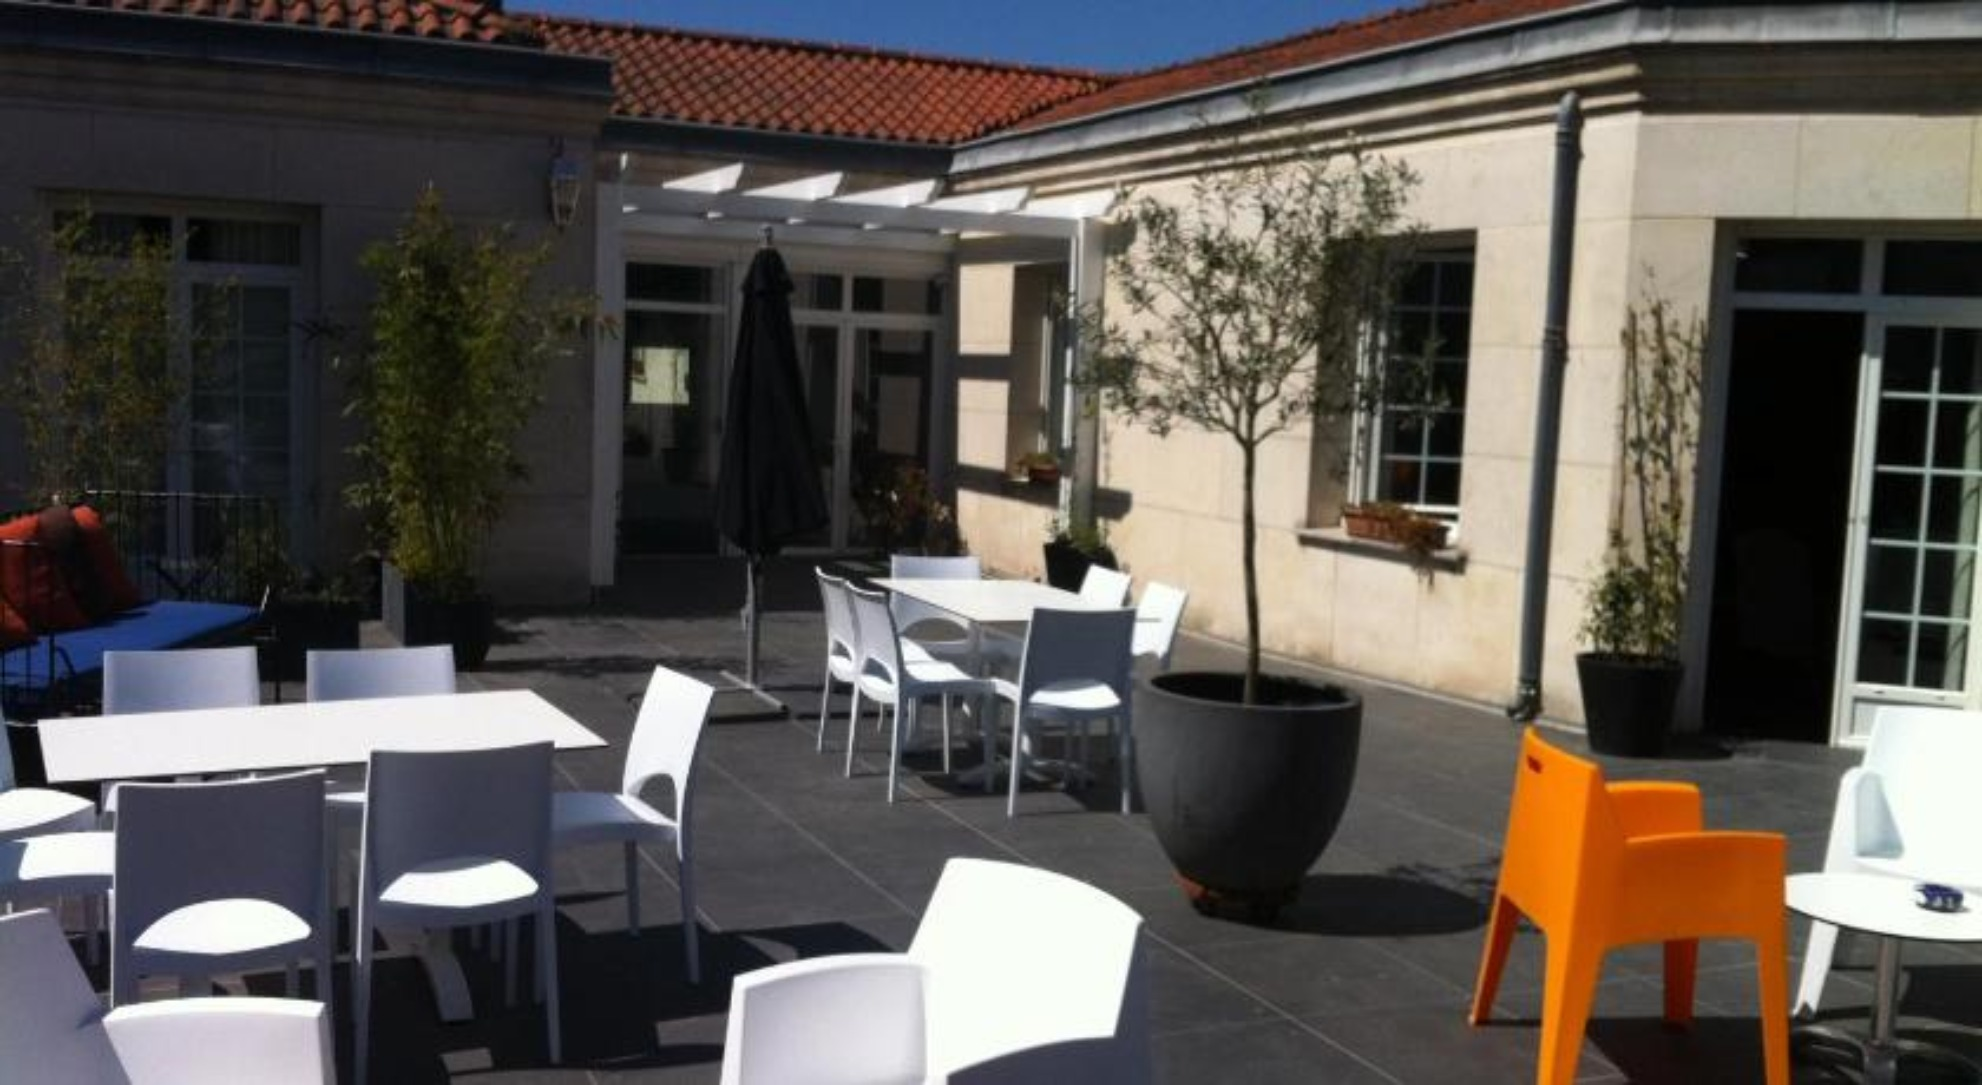 A dining room table in front of a building at La Villa - Bordeaux Chambres d'Hôtes.